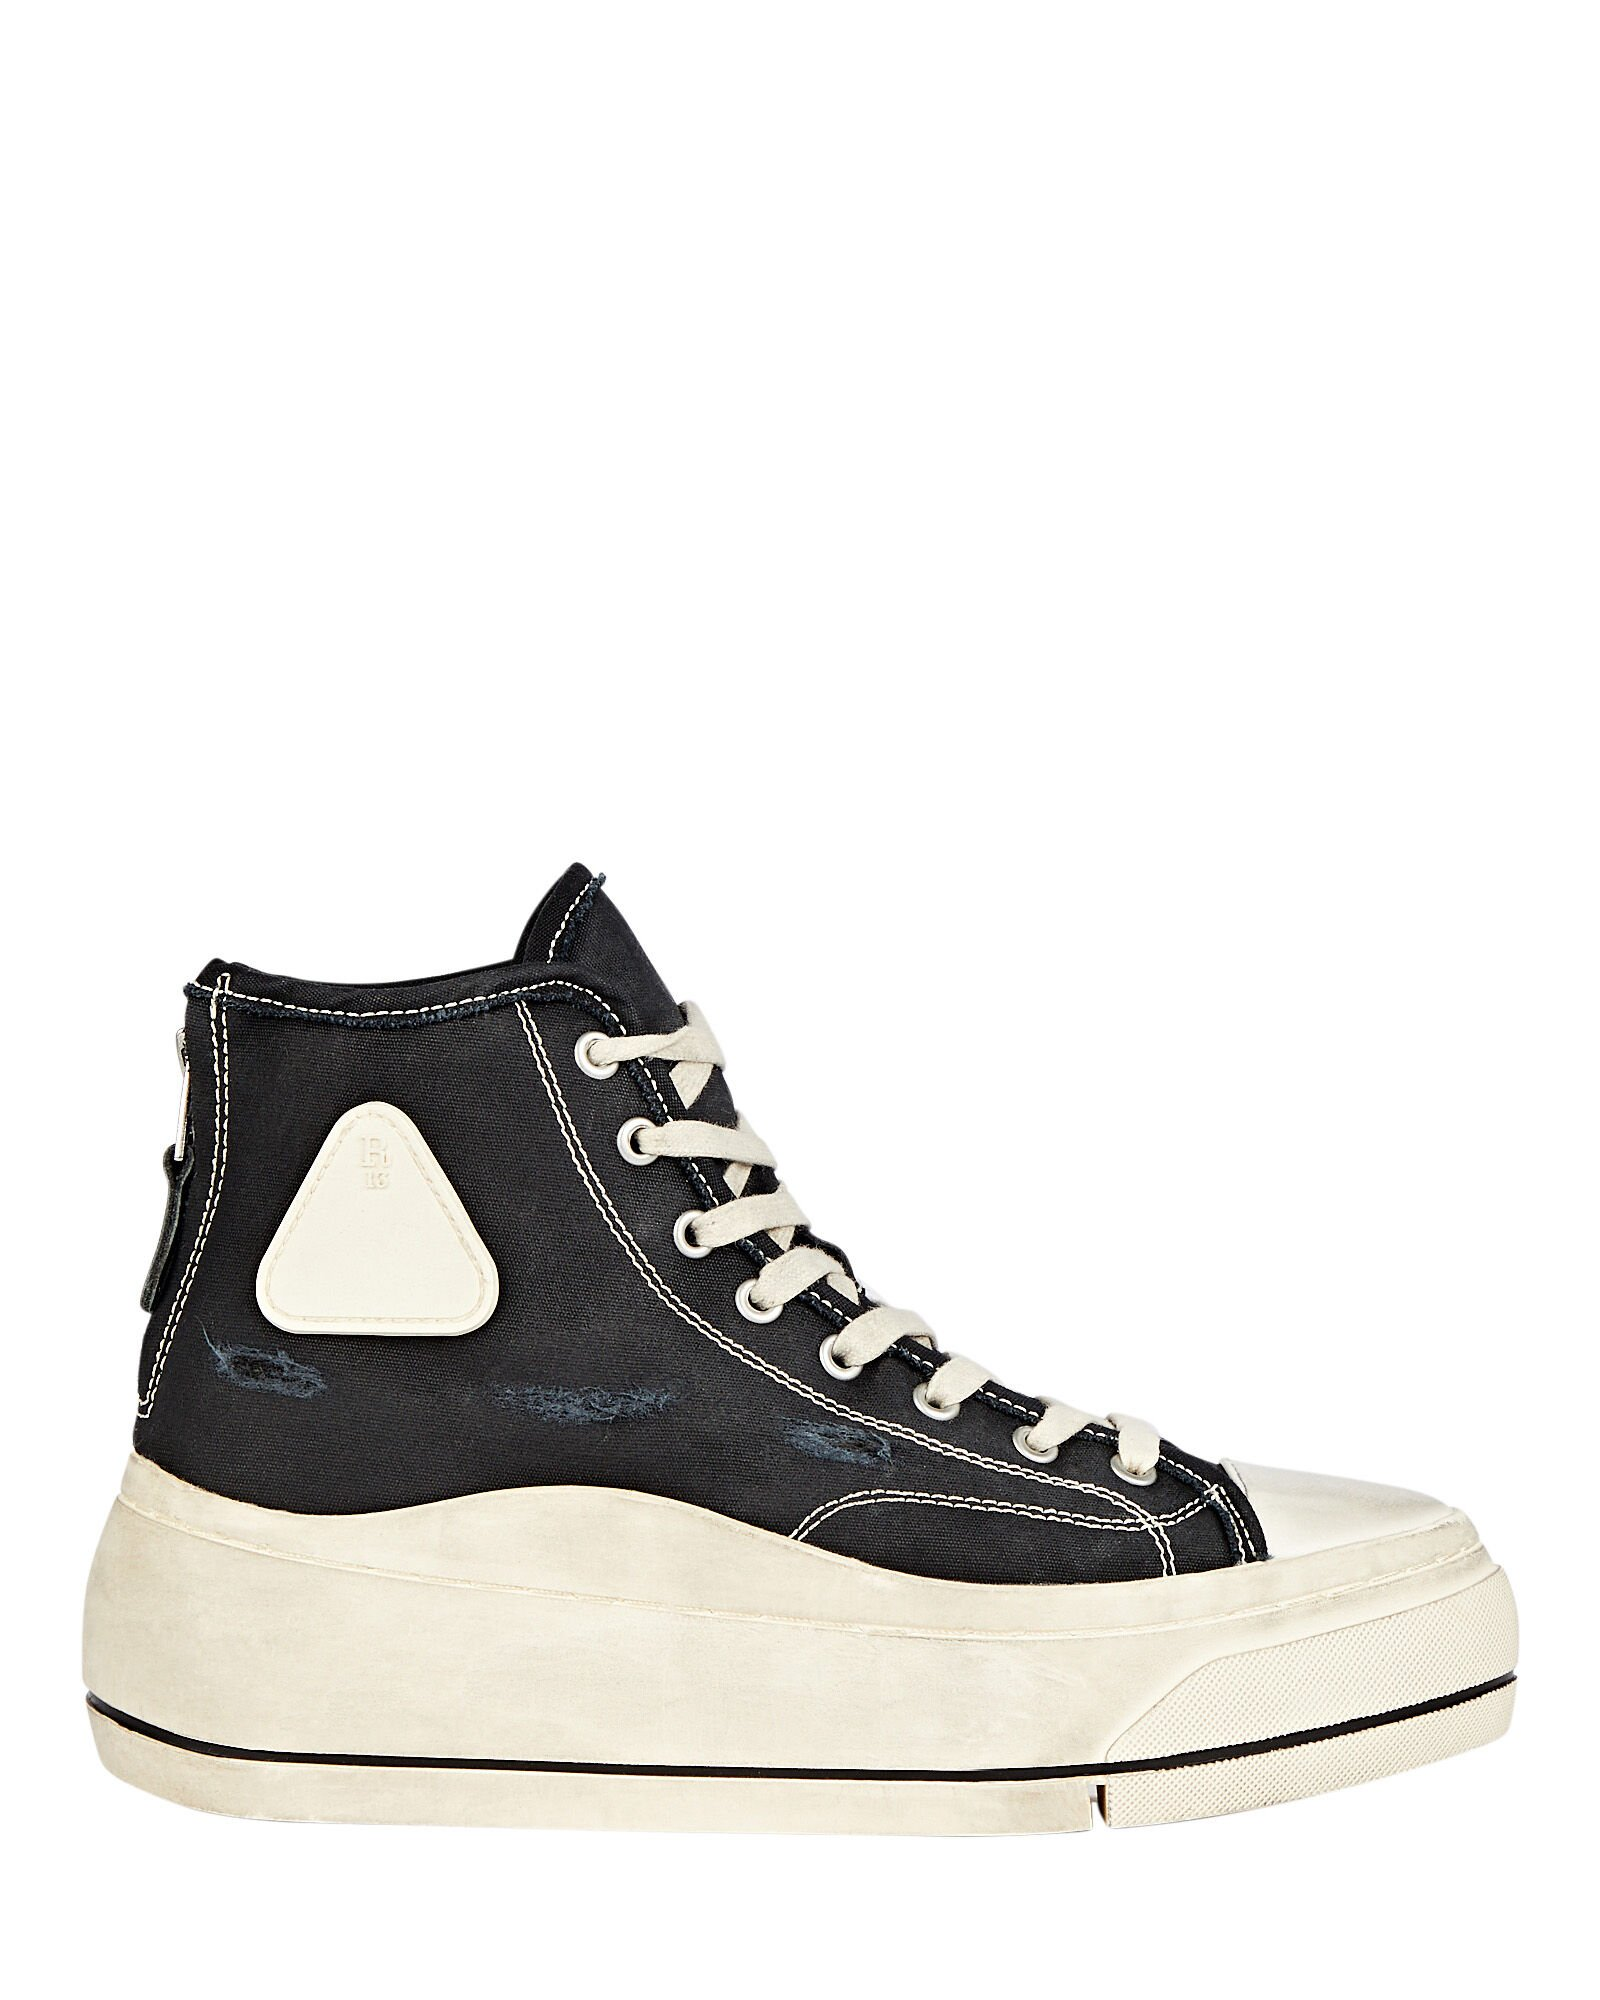 Platform High-Top Canvas Sneakers, BLACK, hi-res